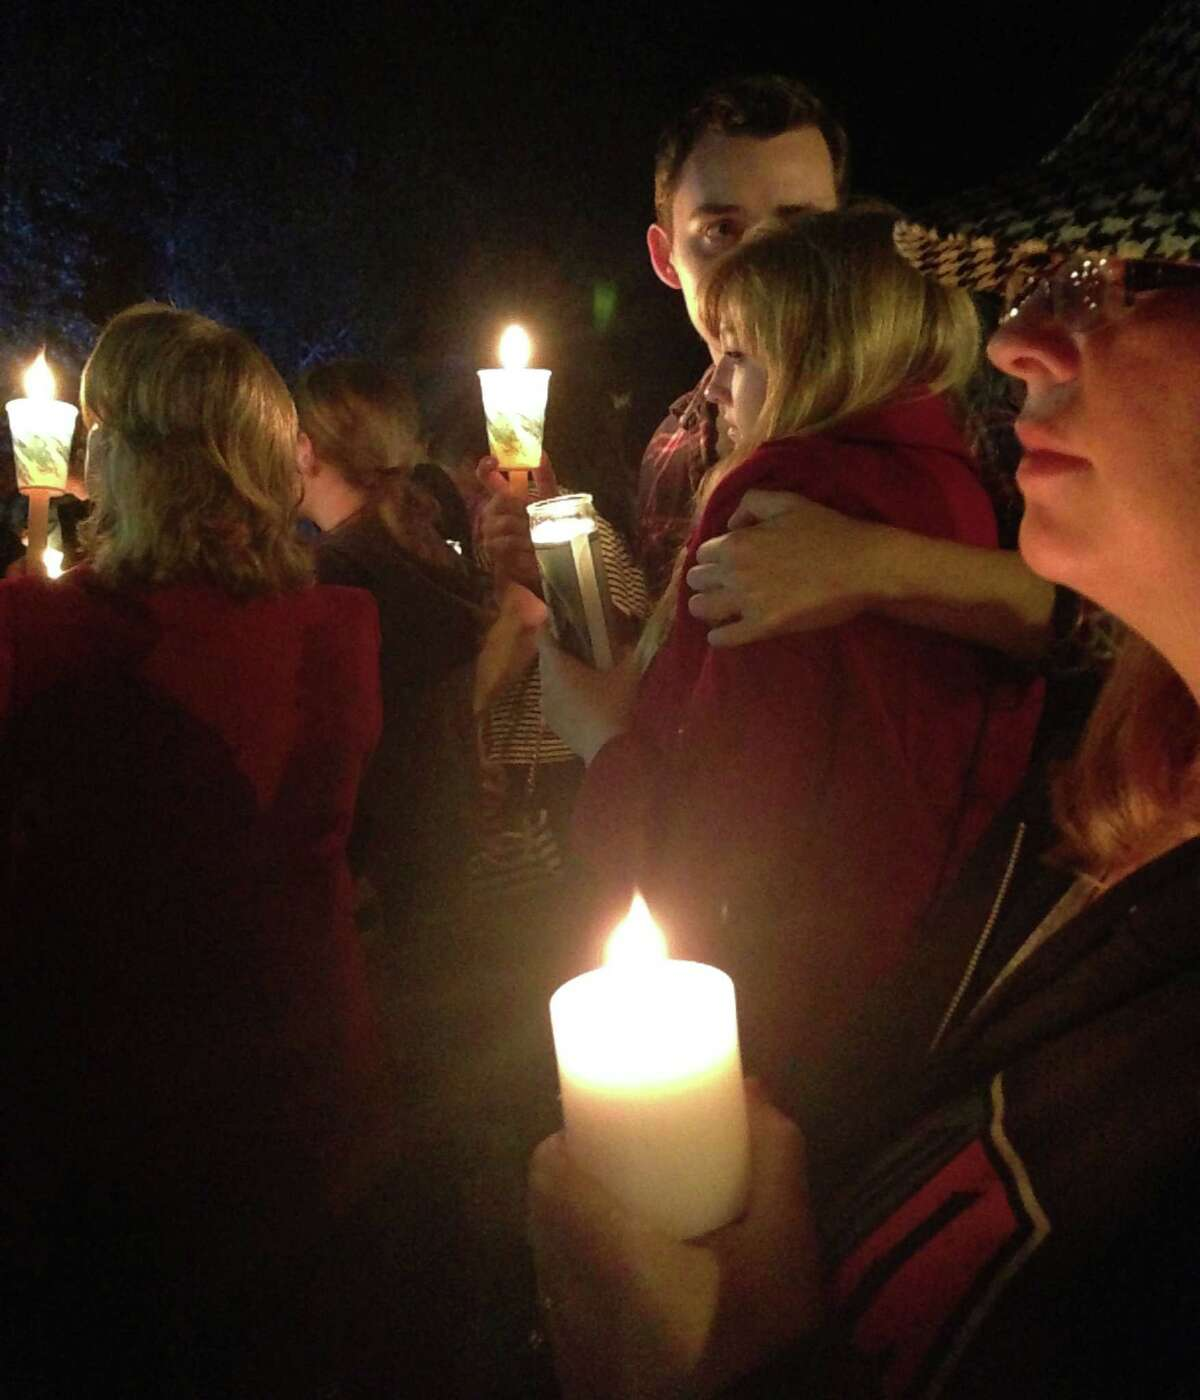 People hold candles Thursday, Oct. 1, 2015, as they attend a memorial for victims of a deadly shooting earlier in the day at Umpqua Community College, in Roseburg, Ore.